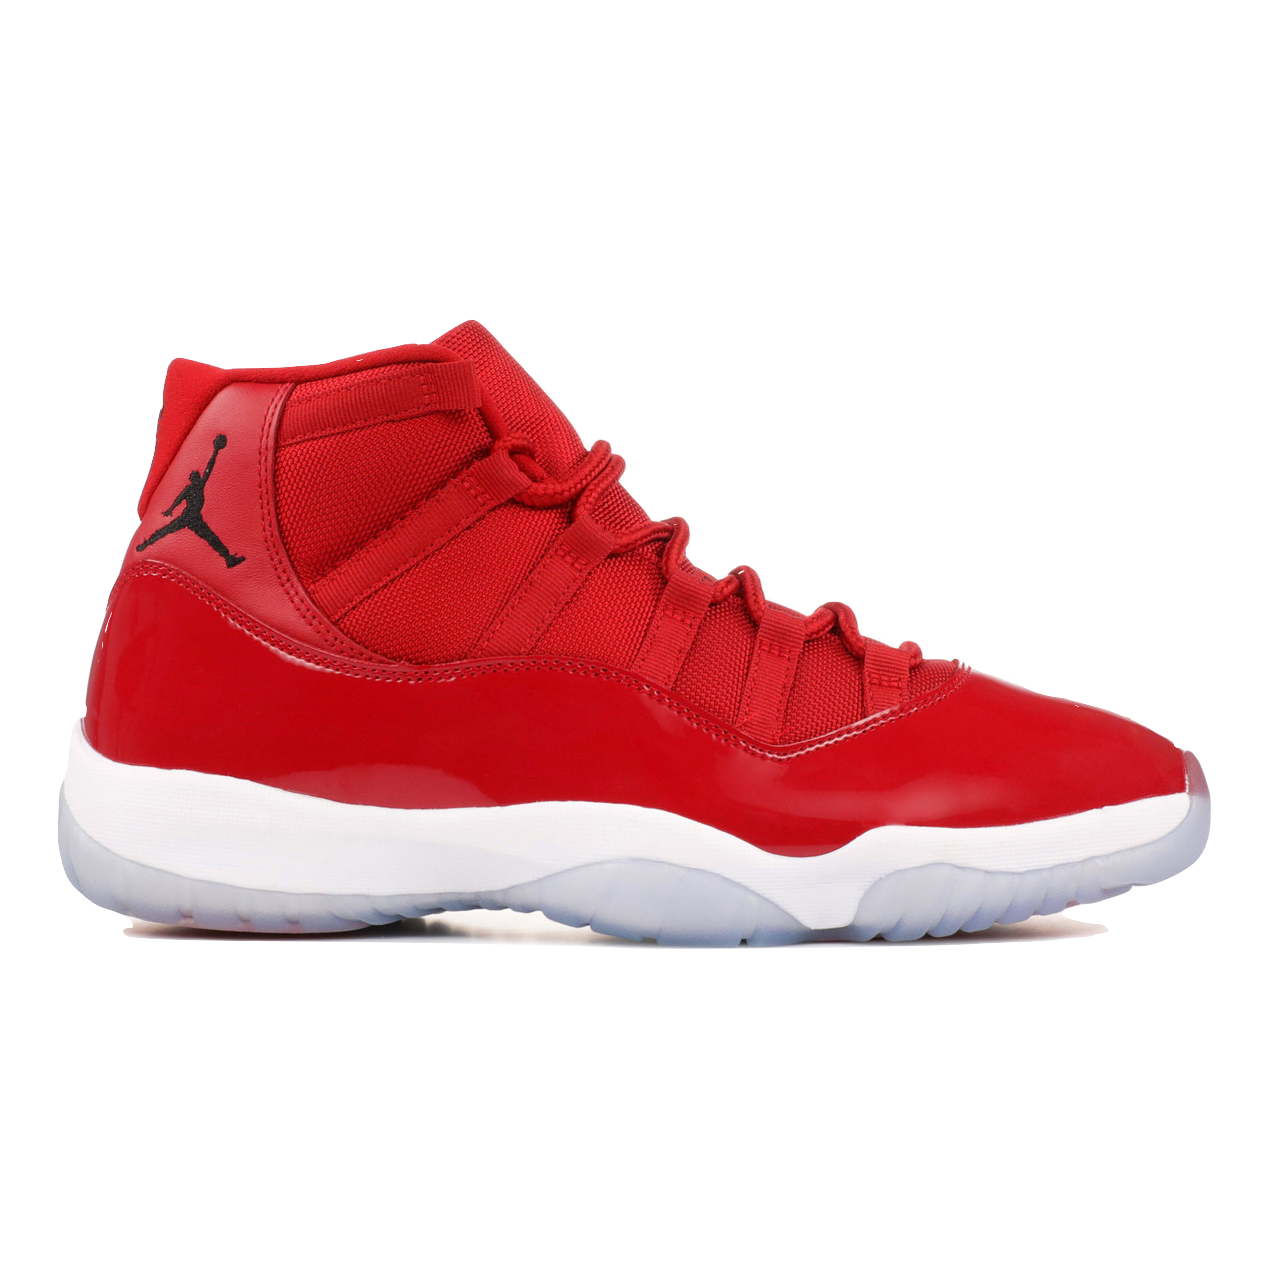 Air Jordan 11 Retro - Win Like 96